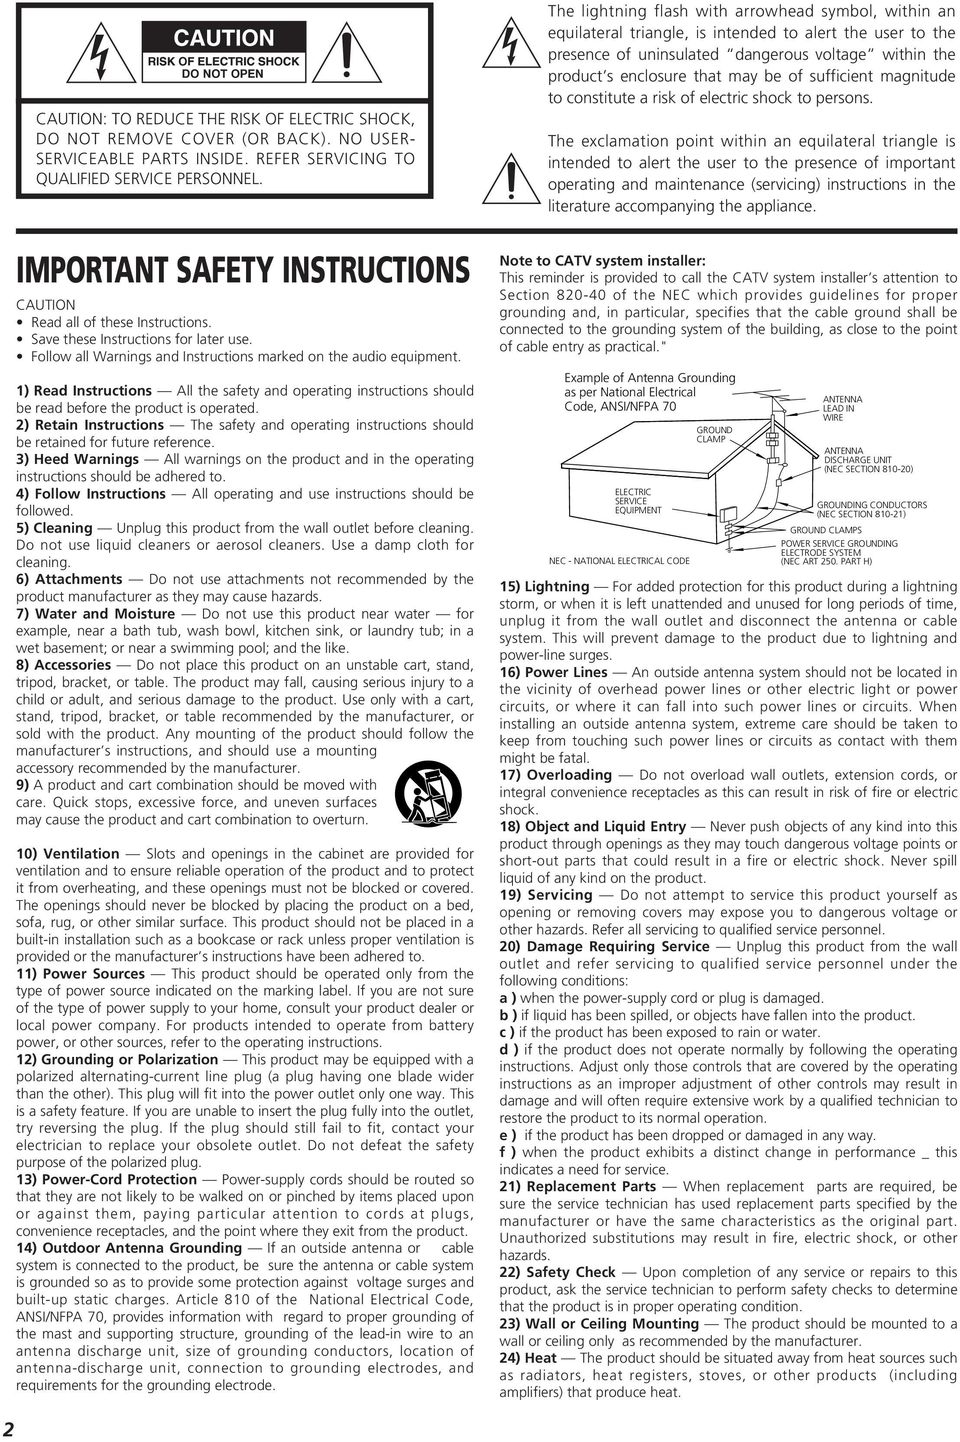 1) Read Instructions All the safety and operating instructions should be read before the product is operated.